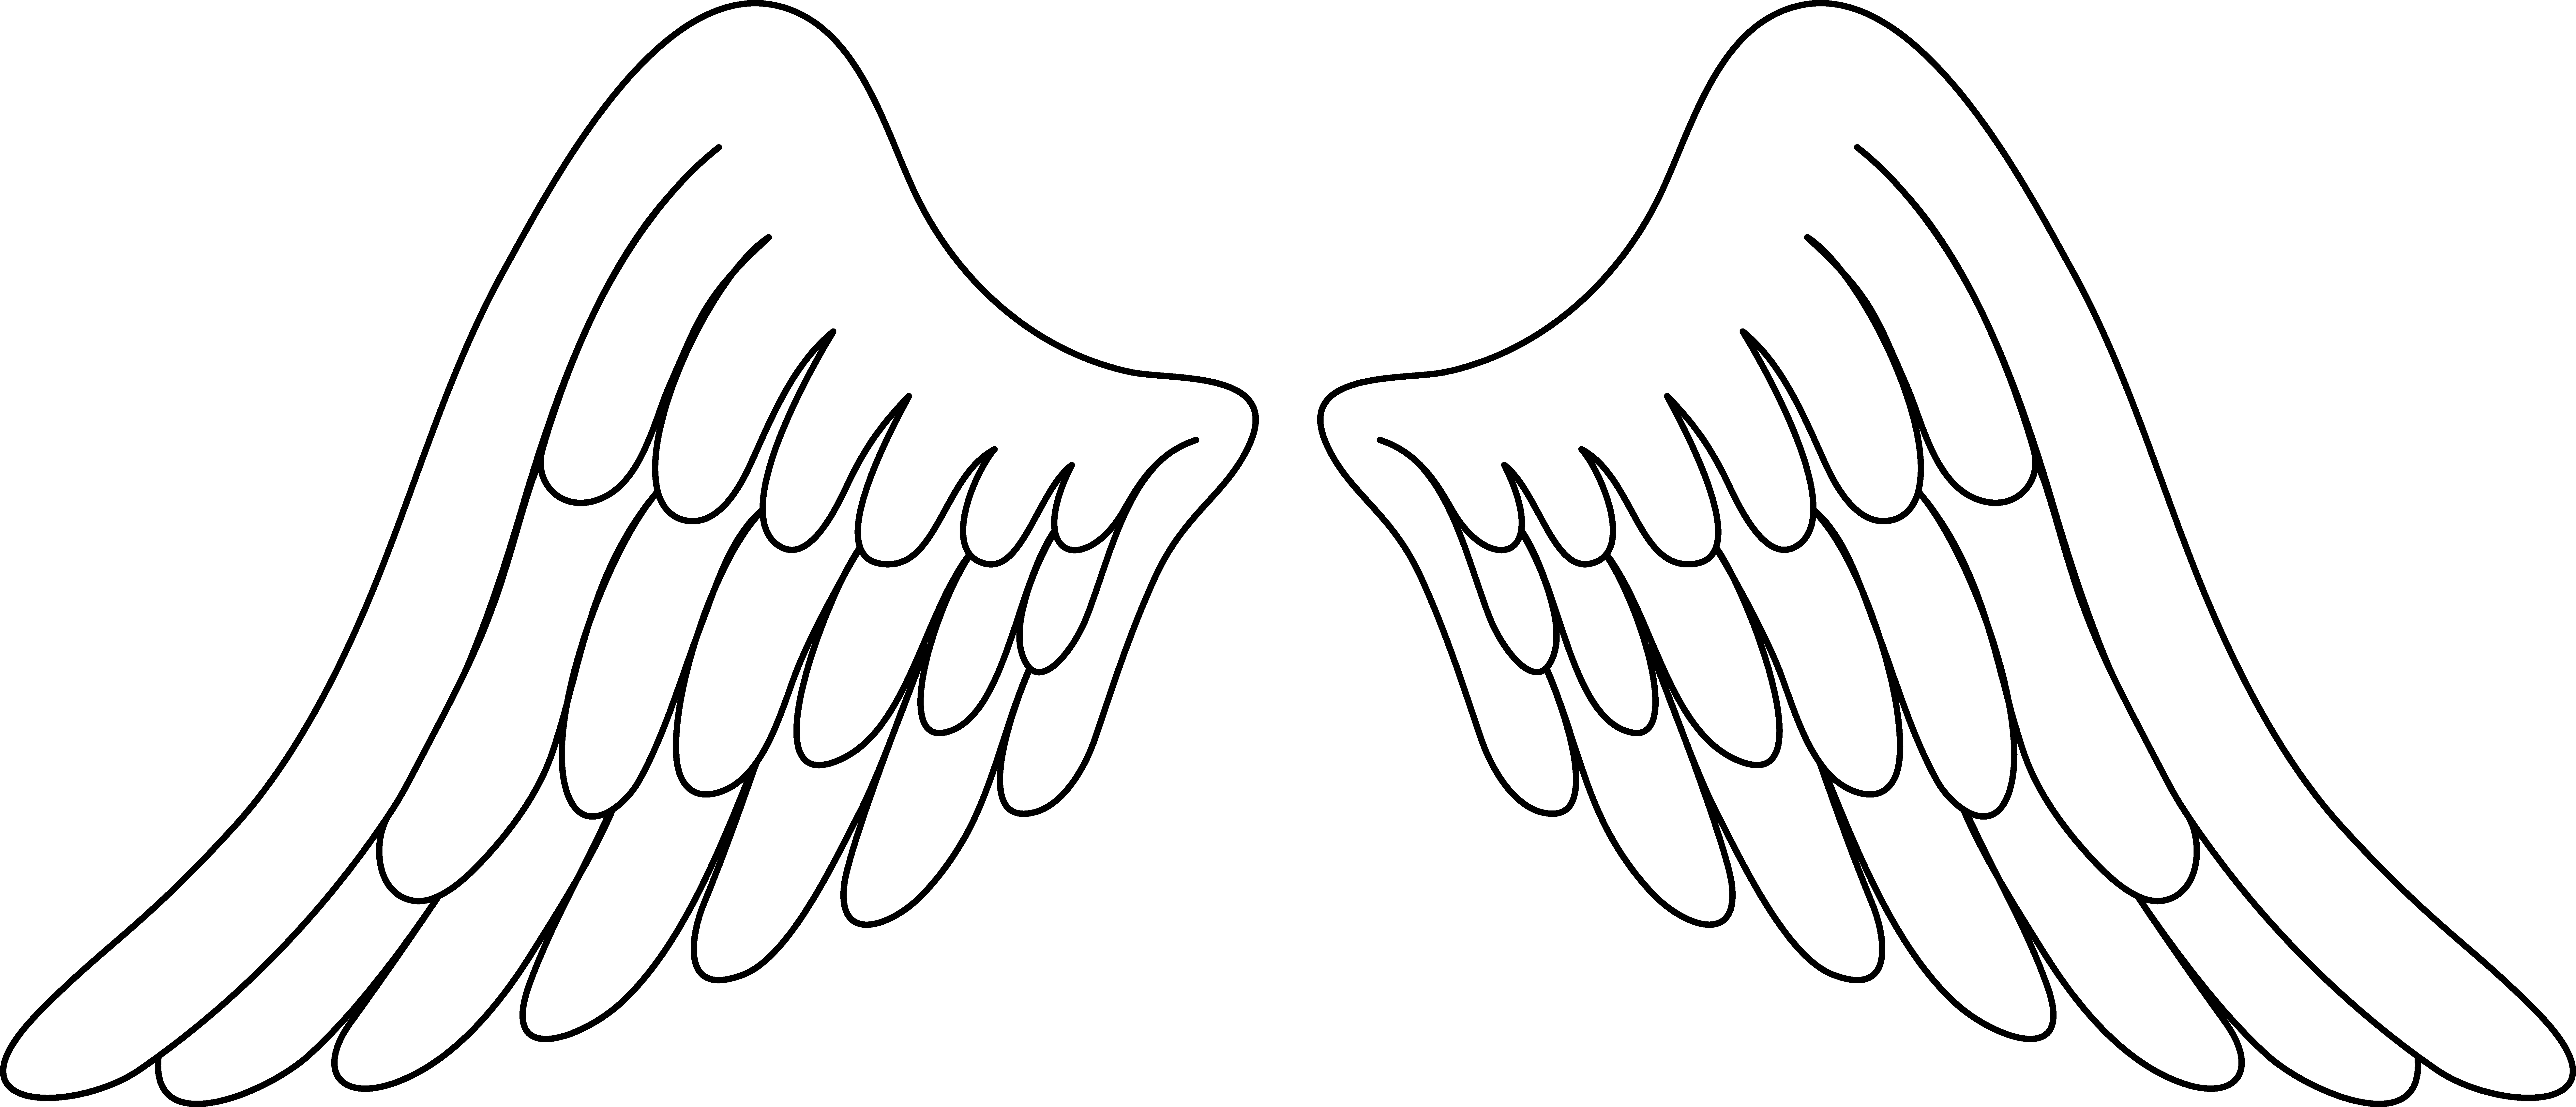 Wing clipart outline. Free vector angel wings